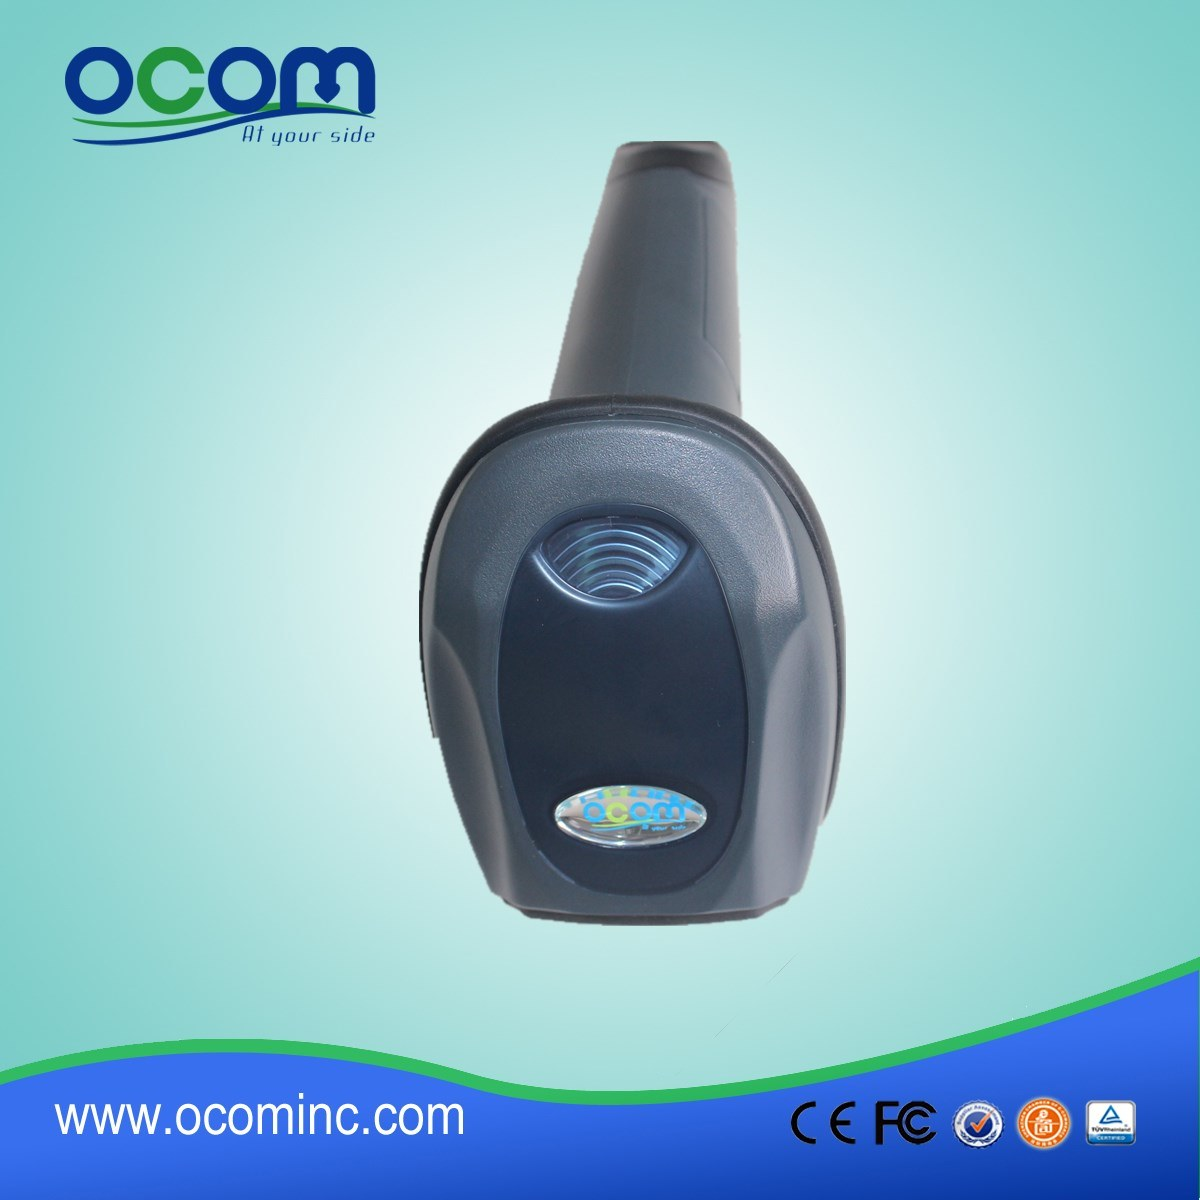 Ocbs-W010 2.4G Hz Wireless Laser Barcode Scanner with Optional Wired Mode